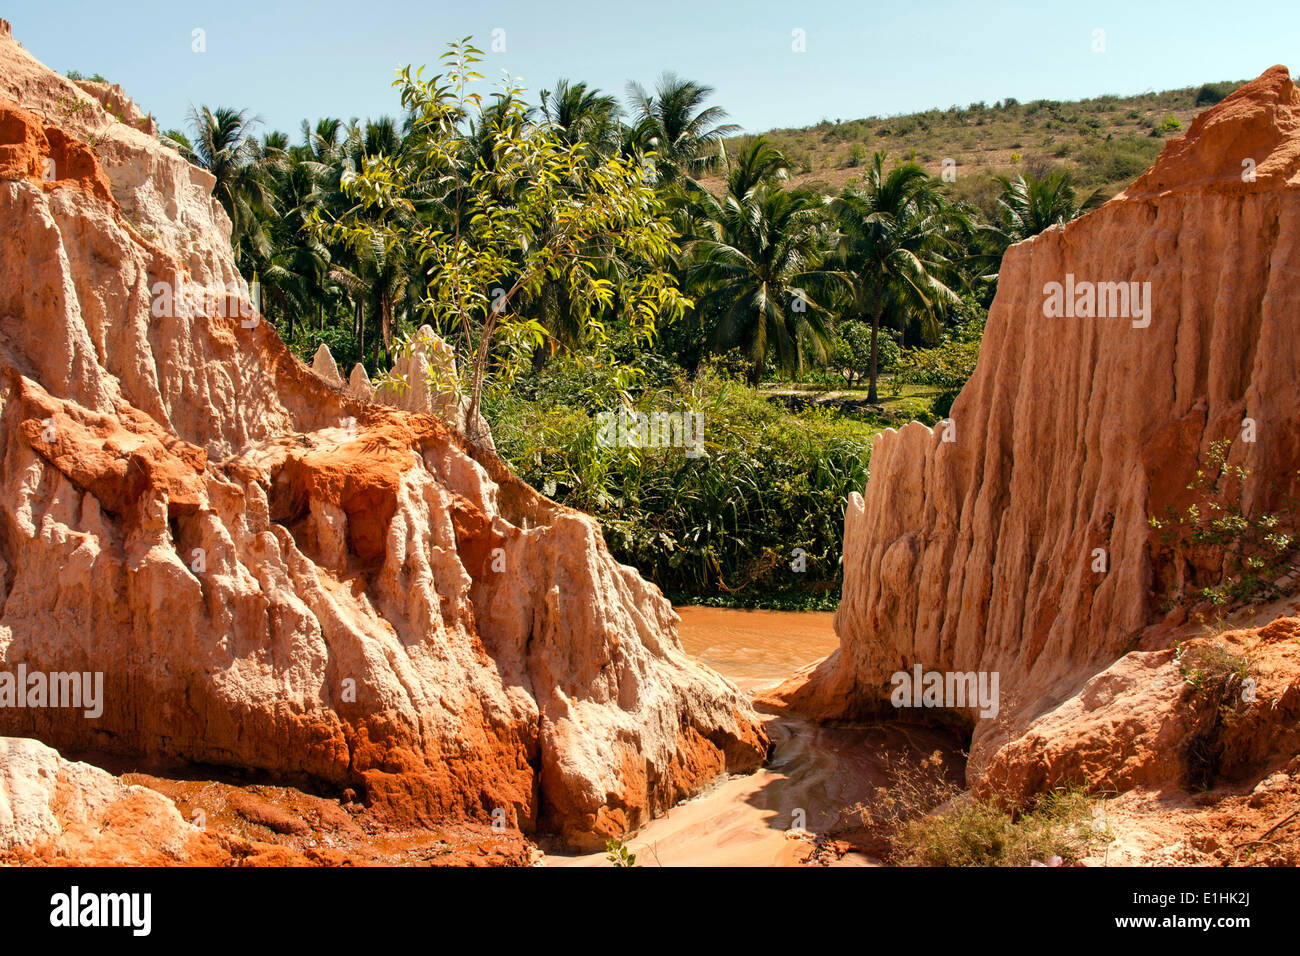 Red River Canyon, sandstone, river bed, near Mui Ne, South Vietnam, Vietnam Stock Photo